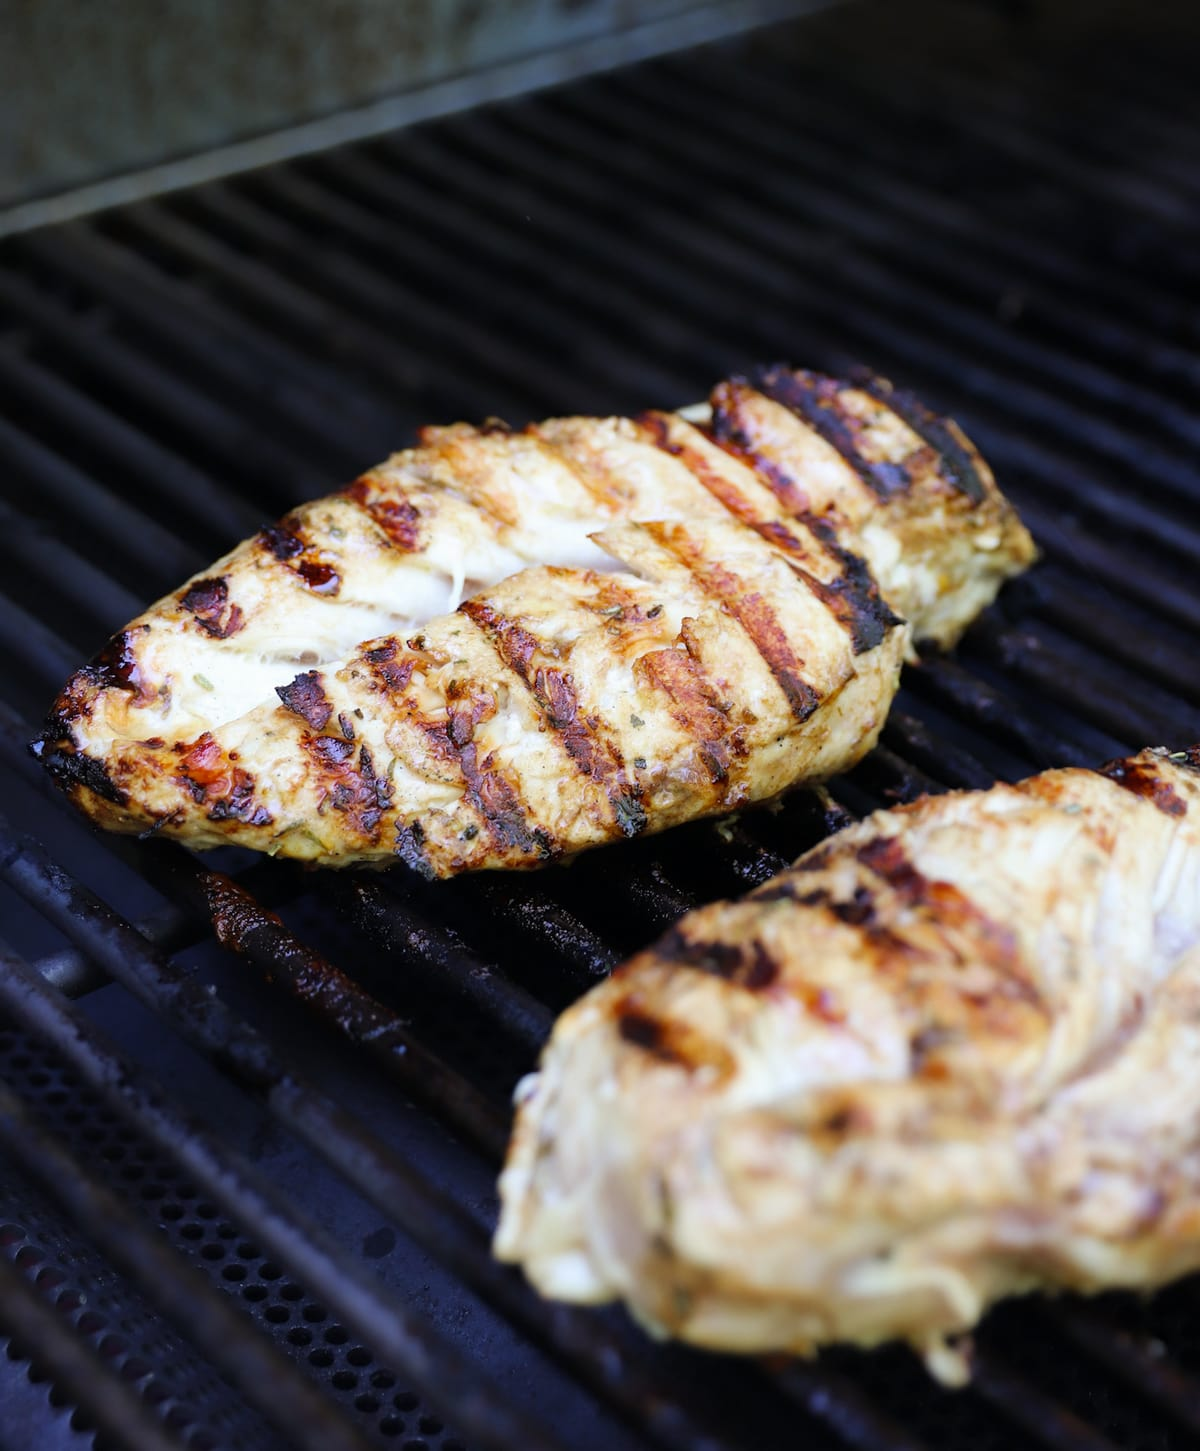 Side view of two chicken breasts cooking on an outdoor grill.